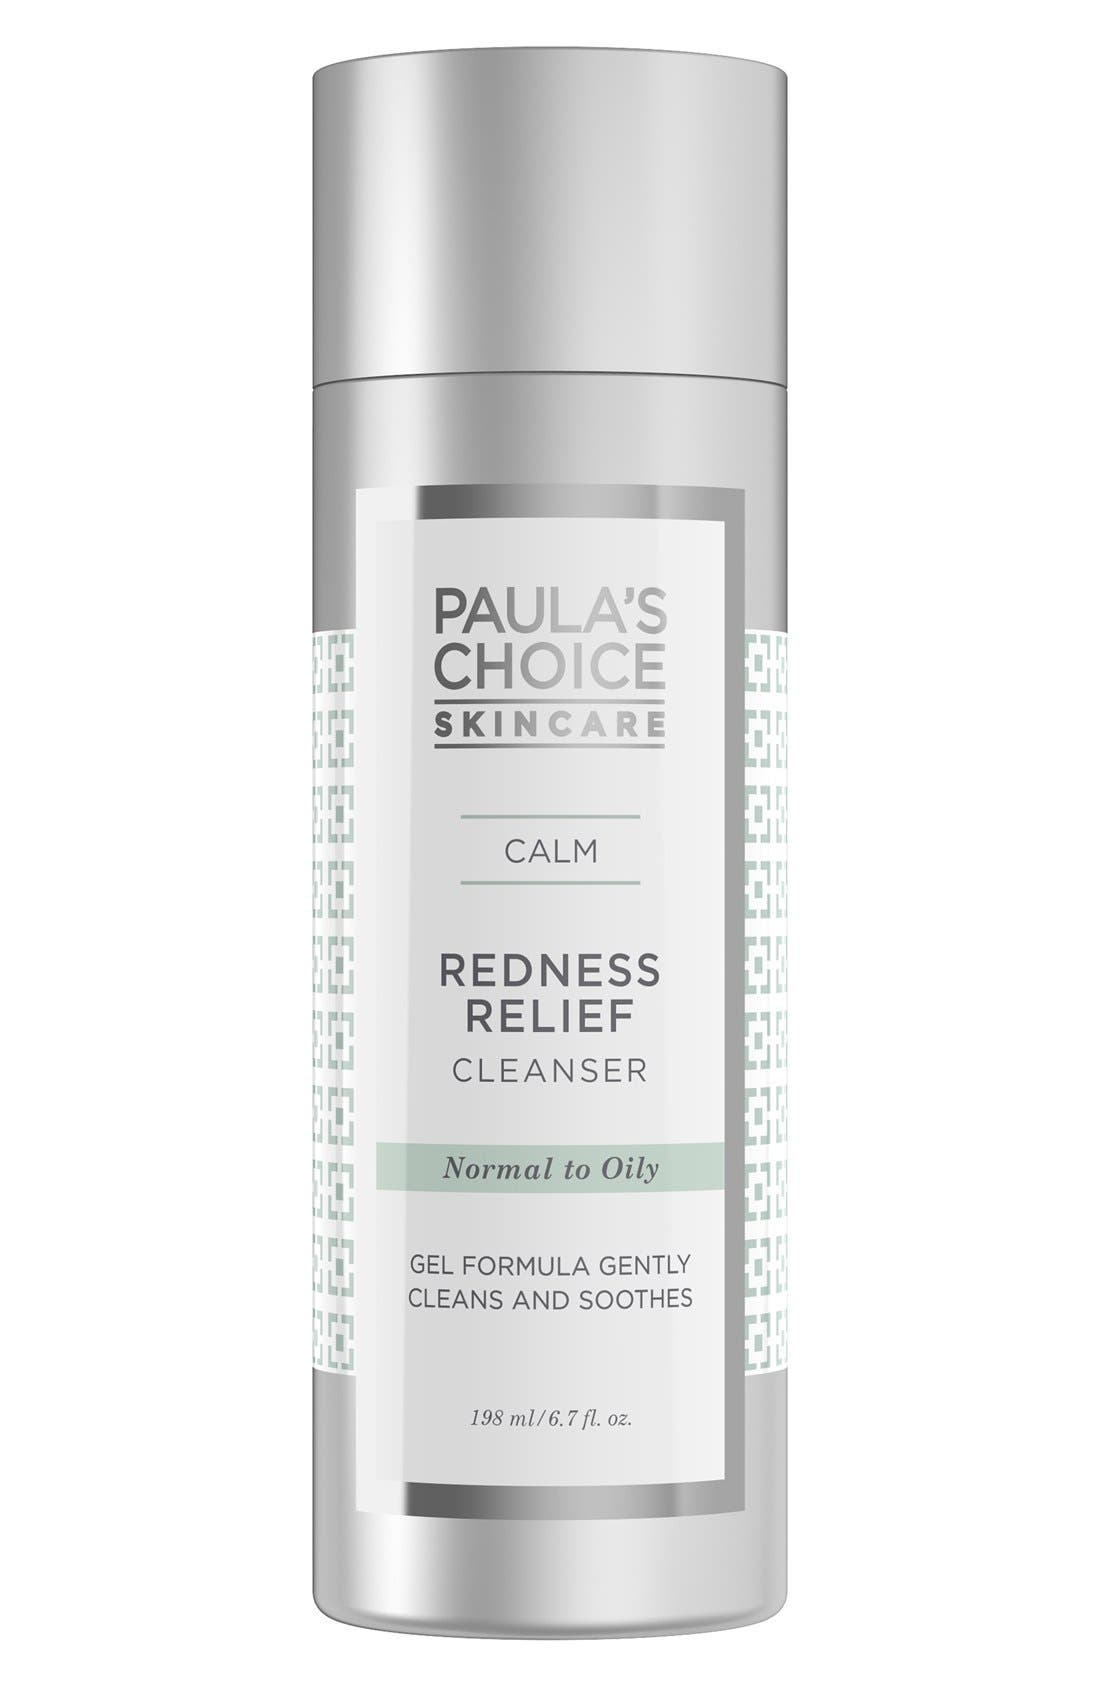 Paula's Choice Calm Cleanser